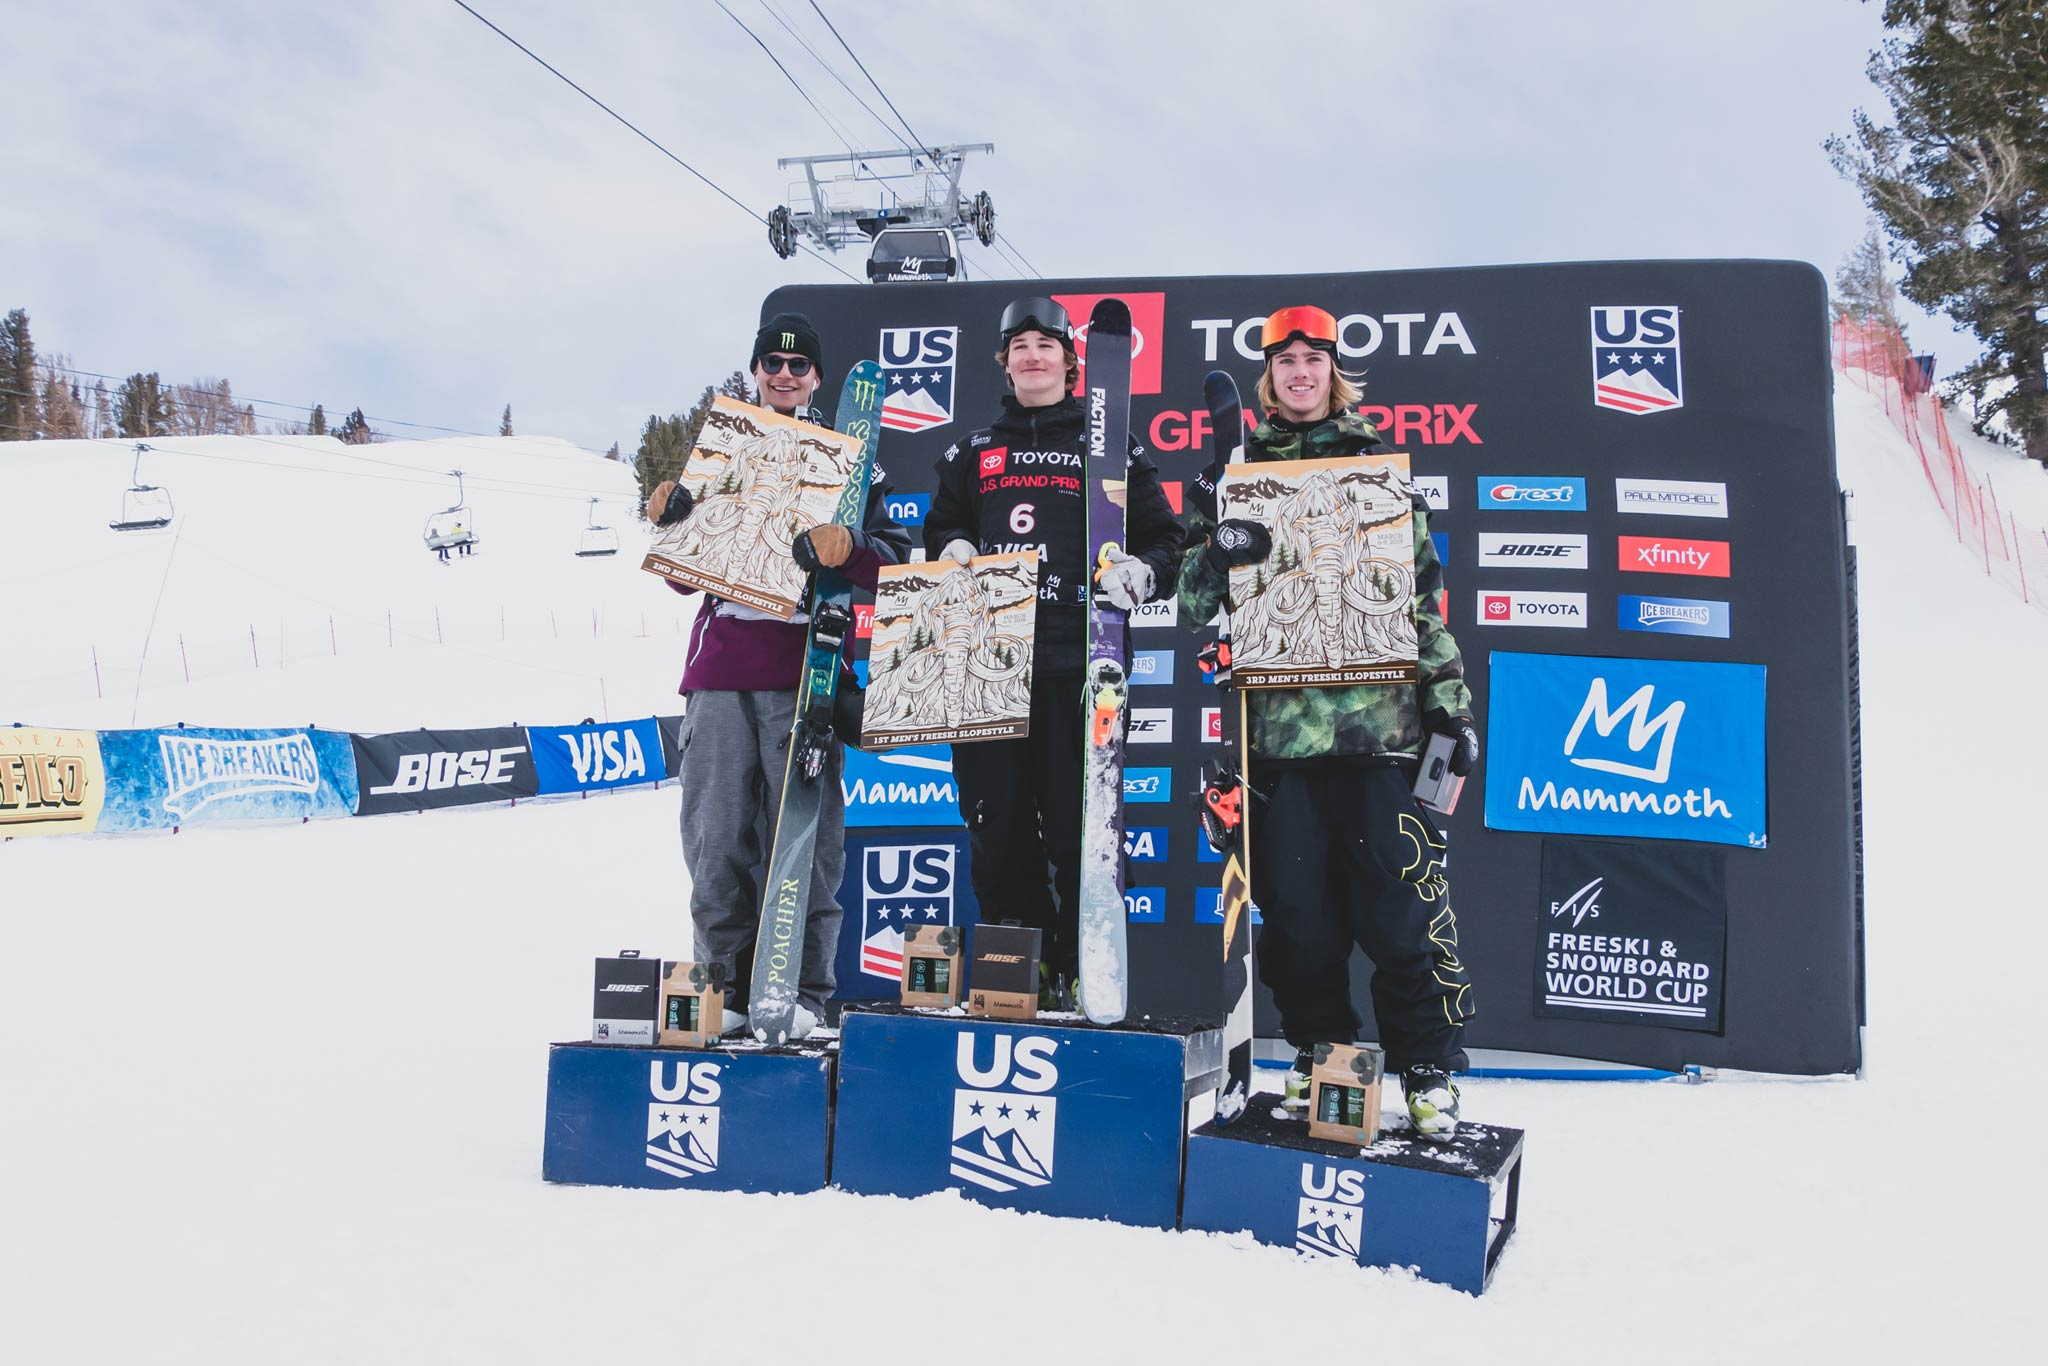 Die drei besten Männer beim FIS Freestyle Slopestyle World Cup 18/19 in Mammoth Mountain (USA): Ferdinand Dahl (NOR), Mac Forehand (USA) und Kiernan Fagan (USA) - Foto: FIS Freestyle